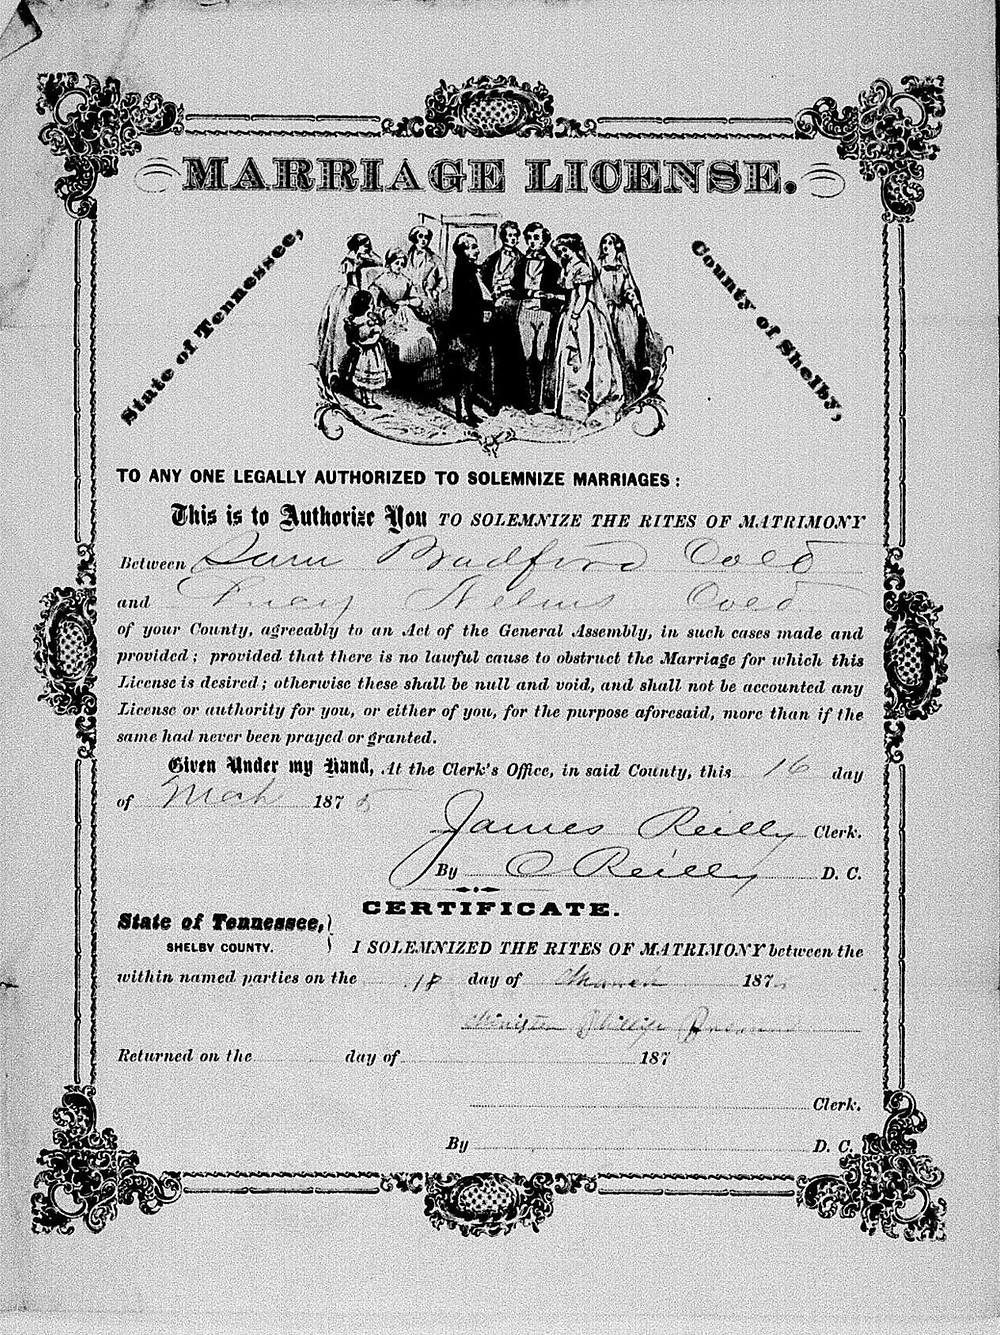 Lucy Nelms (1856-1929) married Sam Bradford on 16 March 1875 in Shelby County, Tennessee. Her second husband was Henderson Nelms.